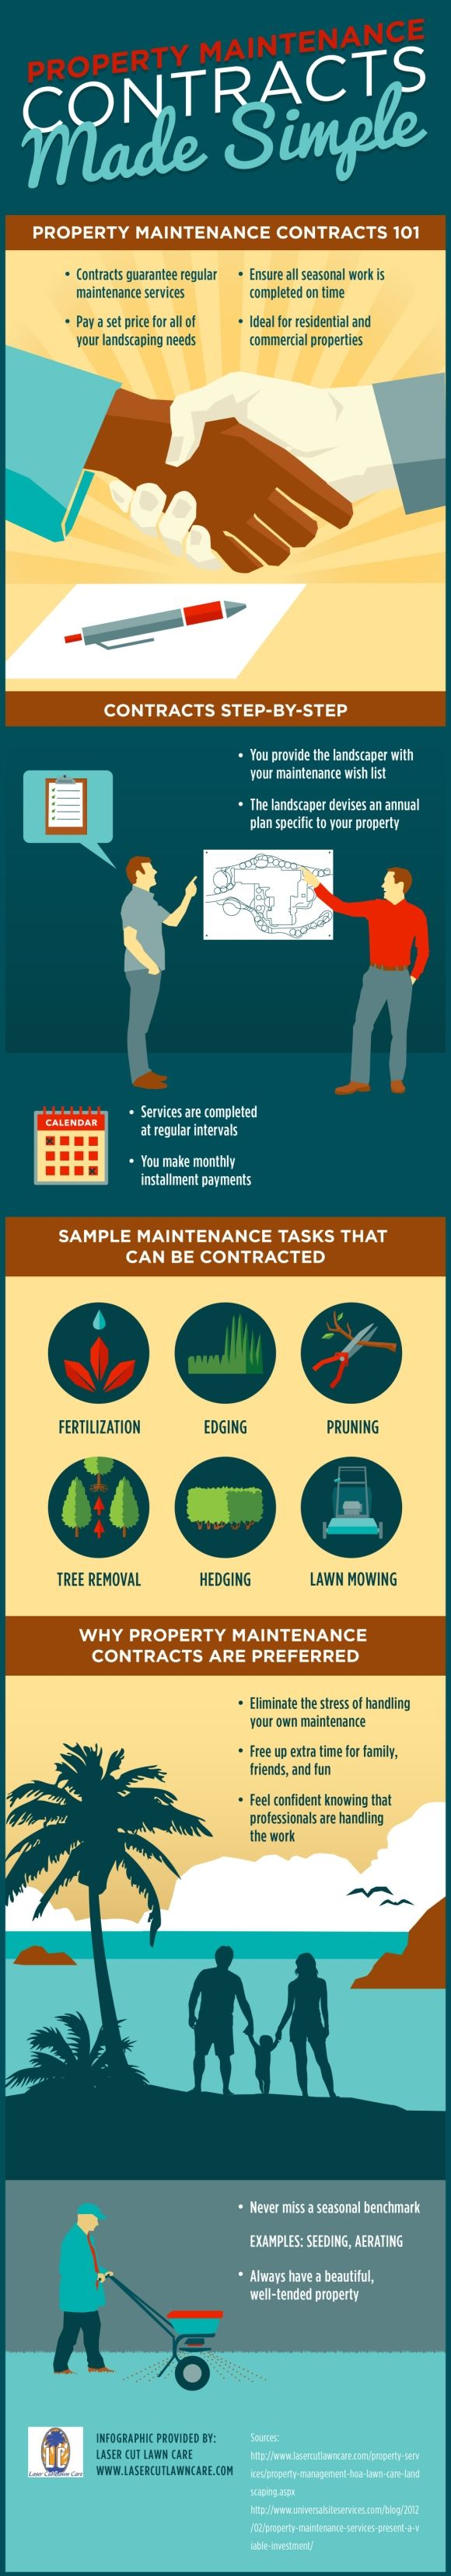 Use a property maintenance contract to provide the landscaper with your maintenance wish list! Check out this Annapolis lawn care services infographic to see how property maintenance contracts can make it easy to keep your home in great condition.